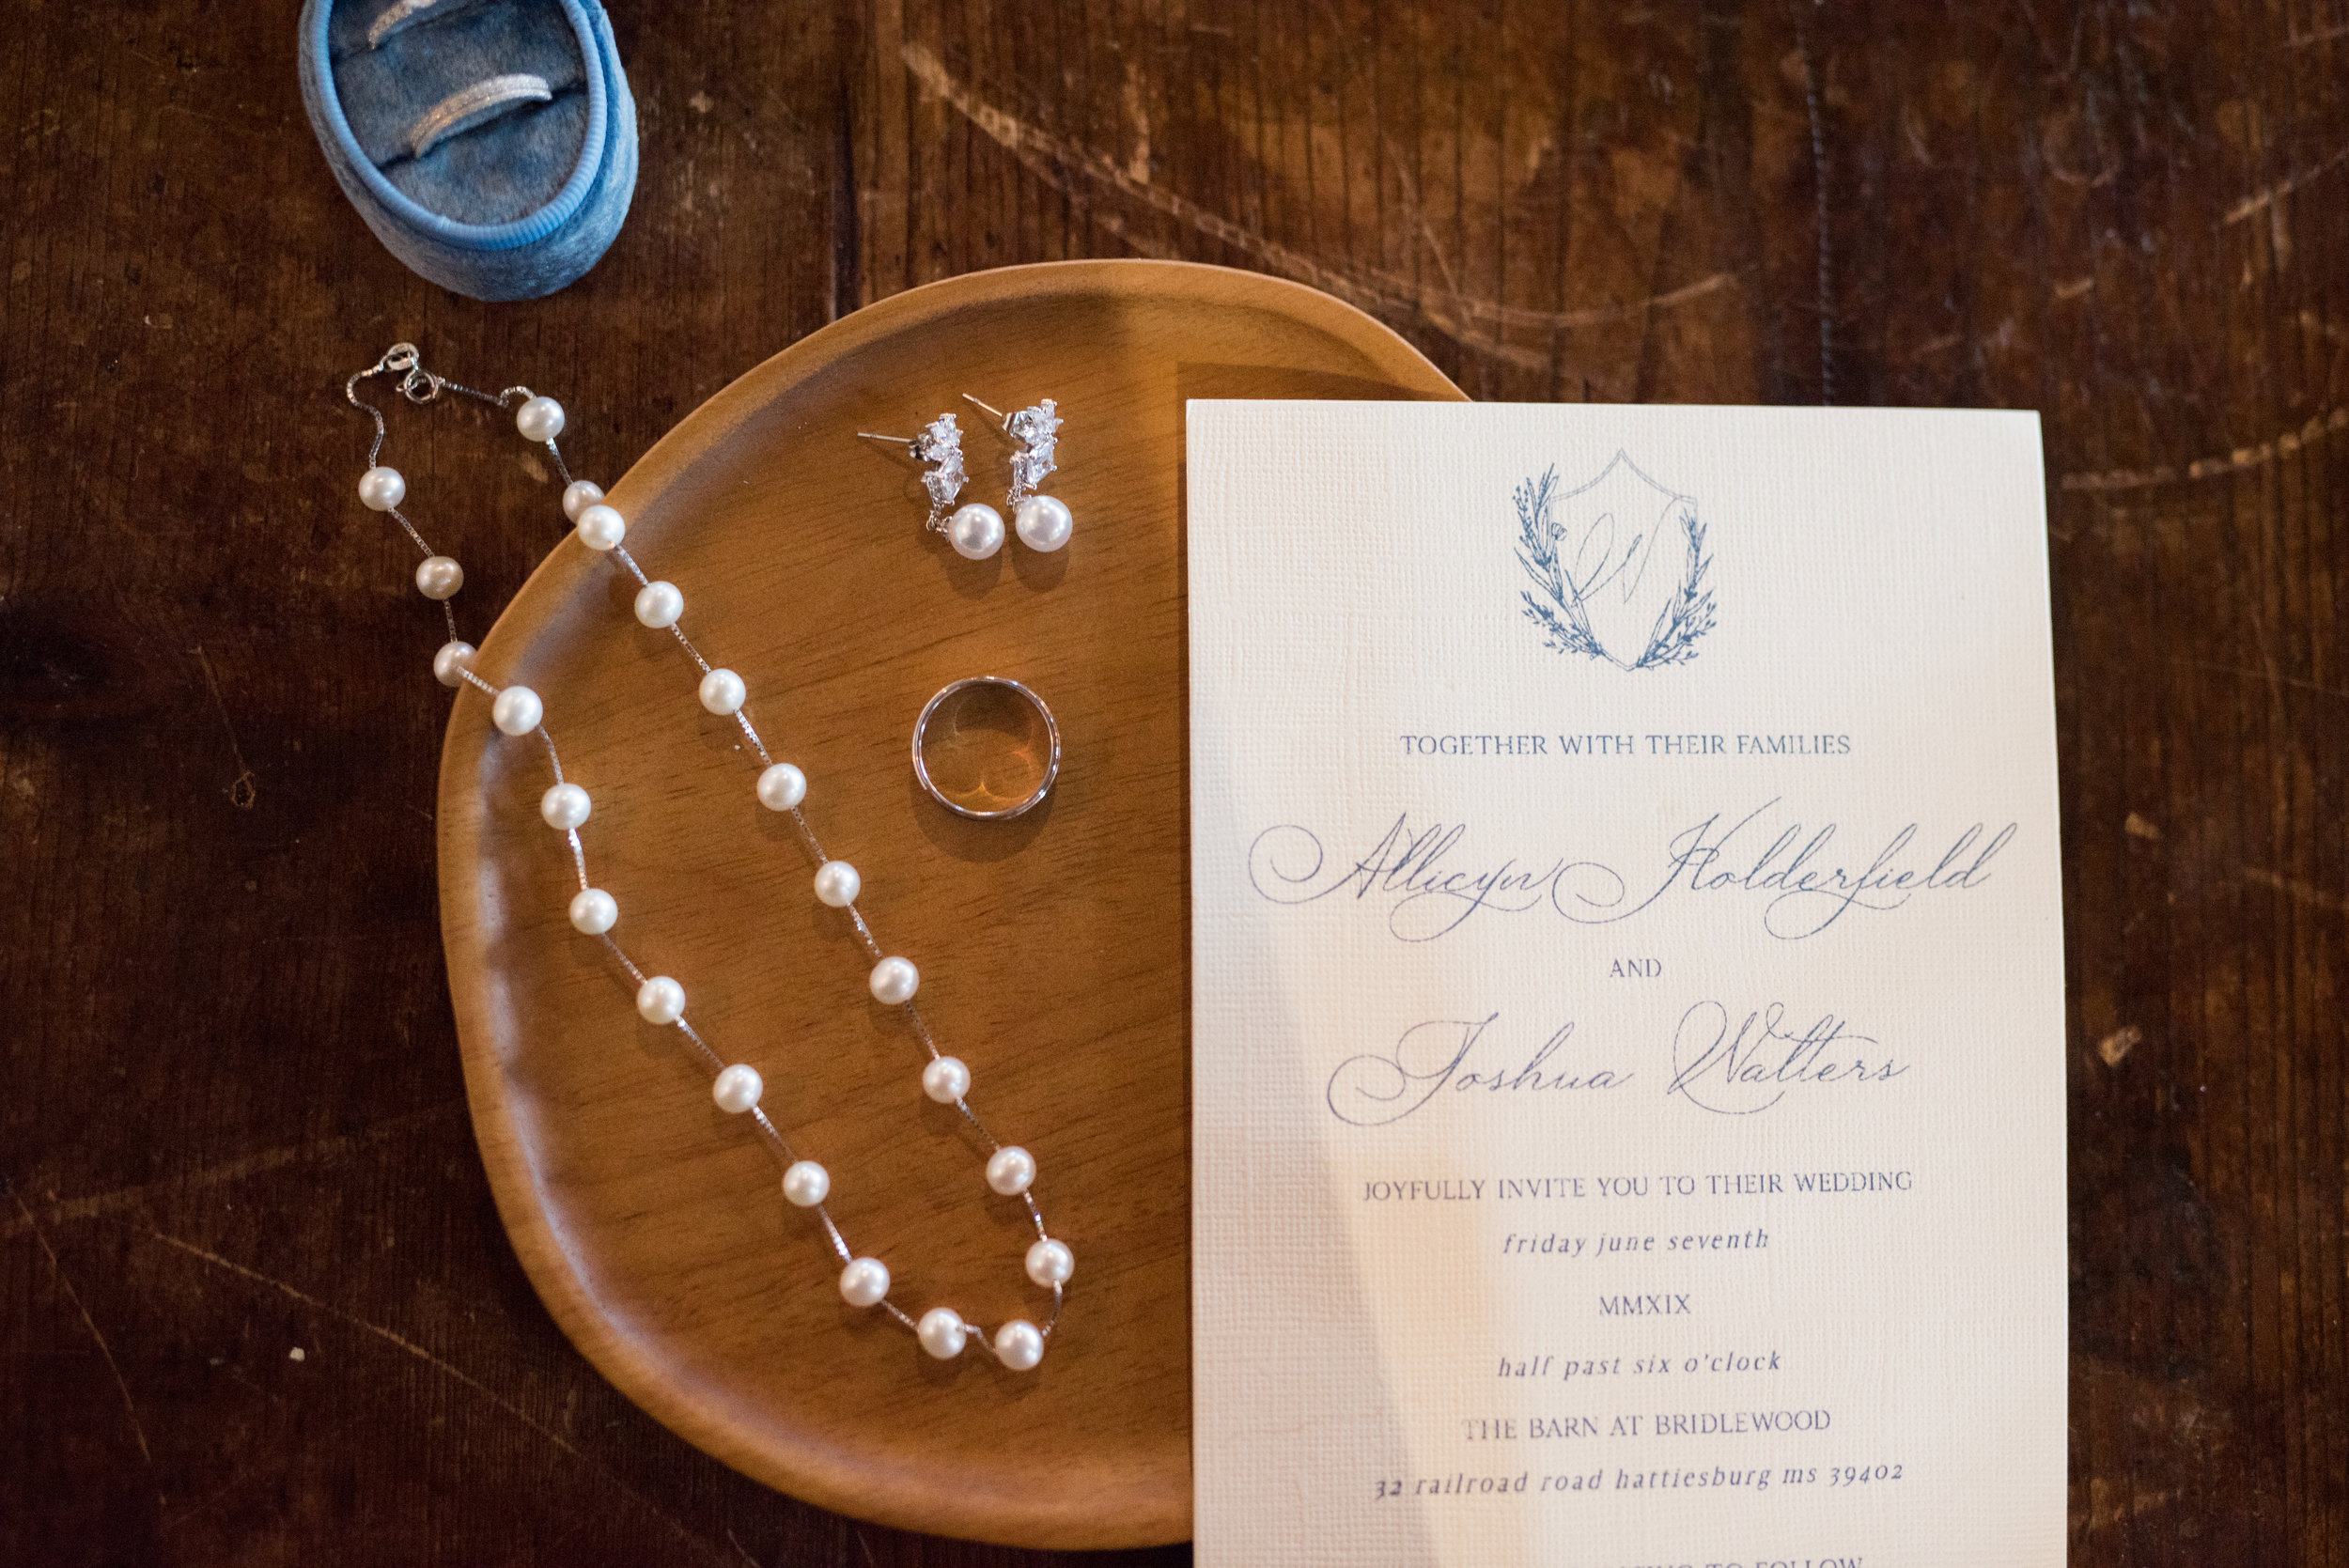 The Barn at Bridlewood wedding in Hattiesburg, Mississippi (MS) in June | Bride's wedding rings in a Mrs. Box, earrings, stationary, groom's ring, pearls, necklace, and details